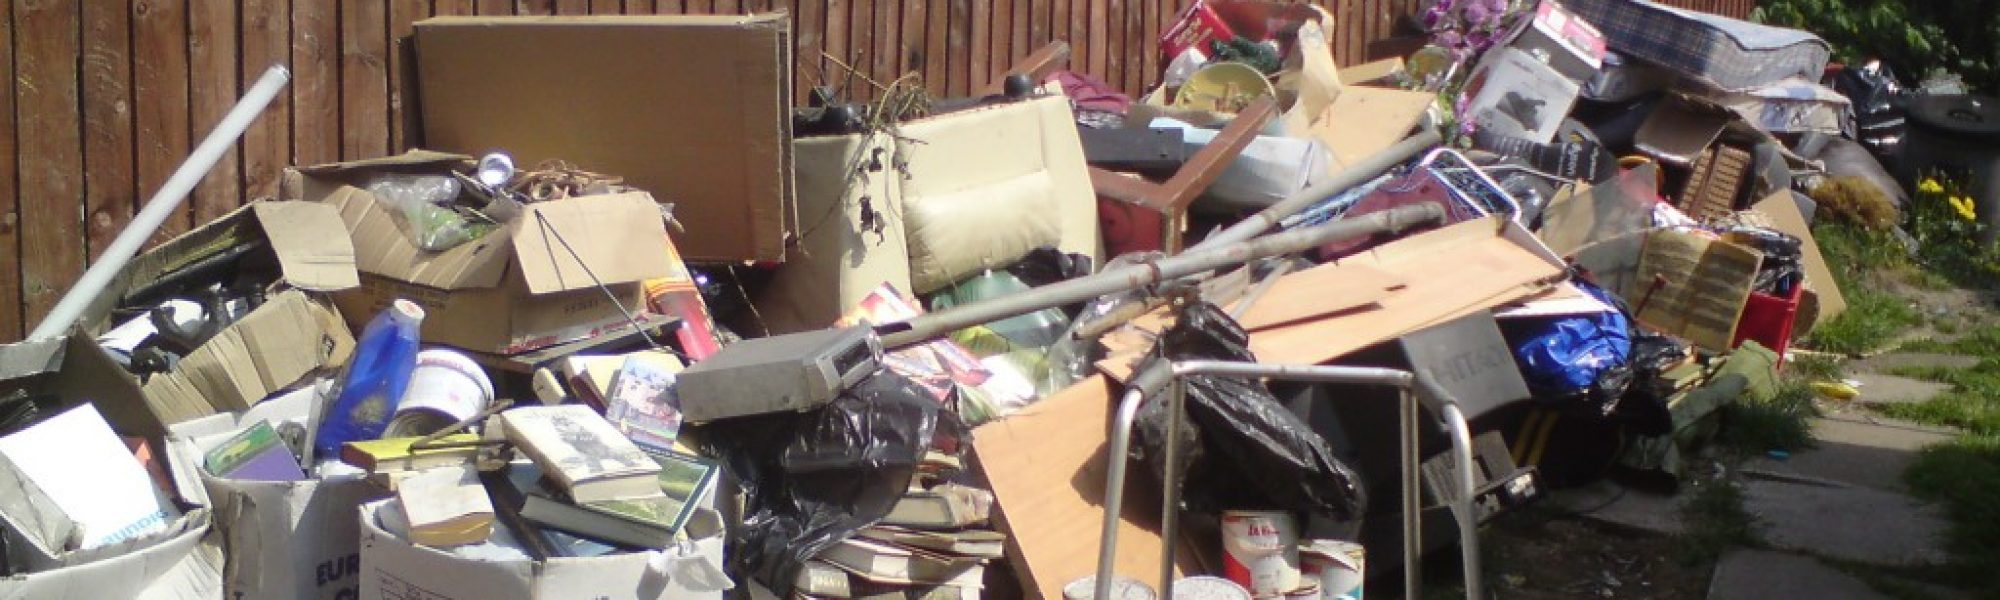 Garden Clearance Barton On Sea Rubbish Removal Waste Recycling - Garden Furniture Clearance Company Dorset